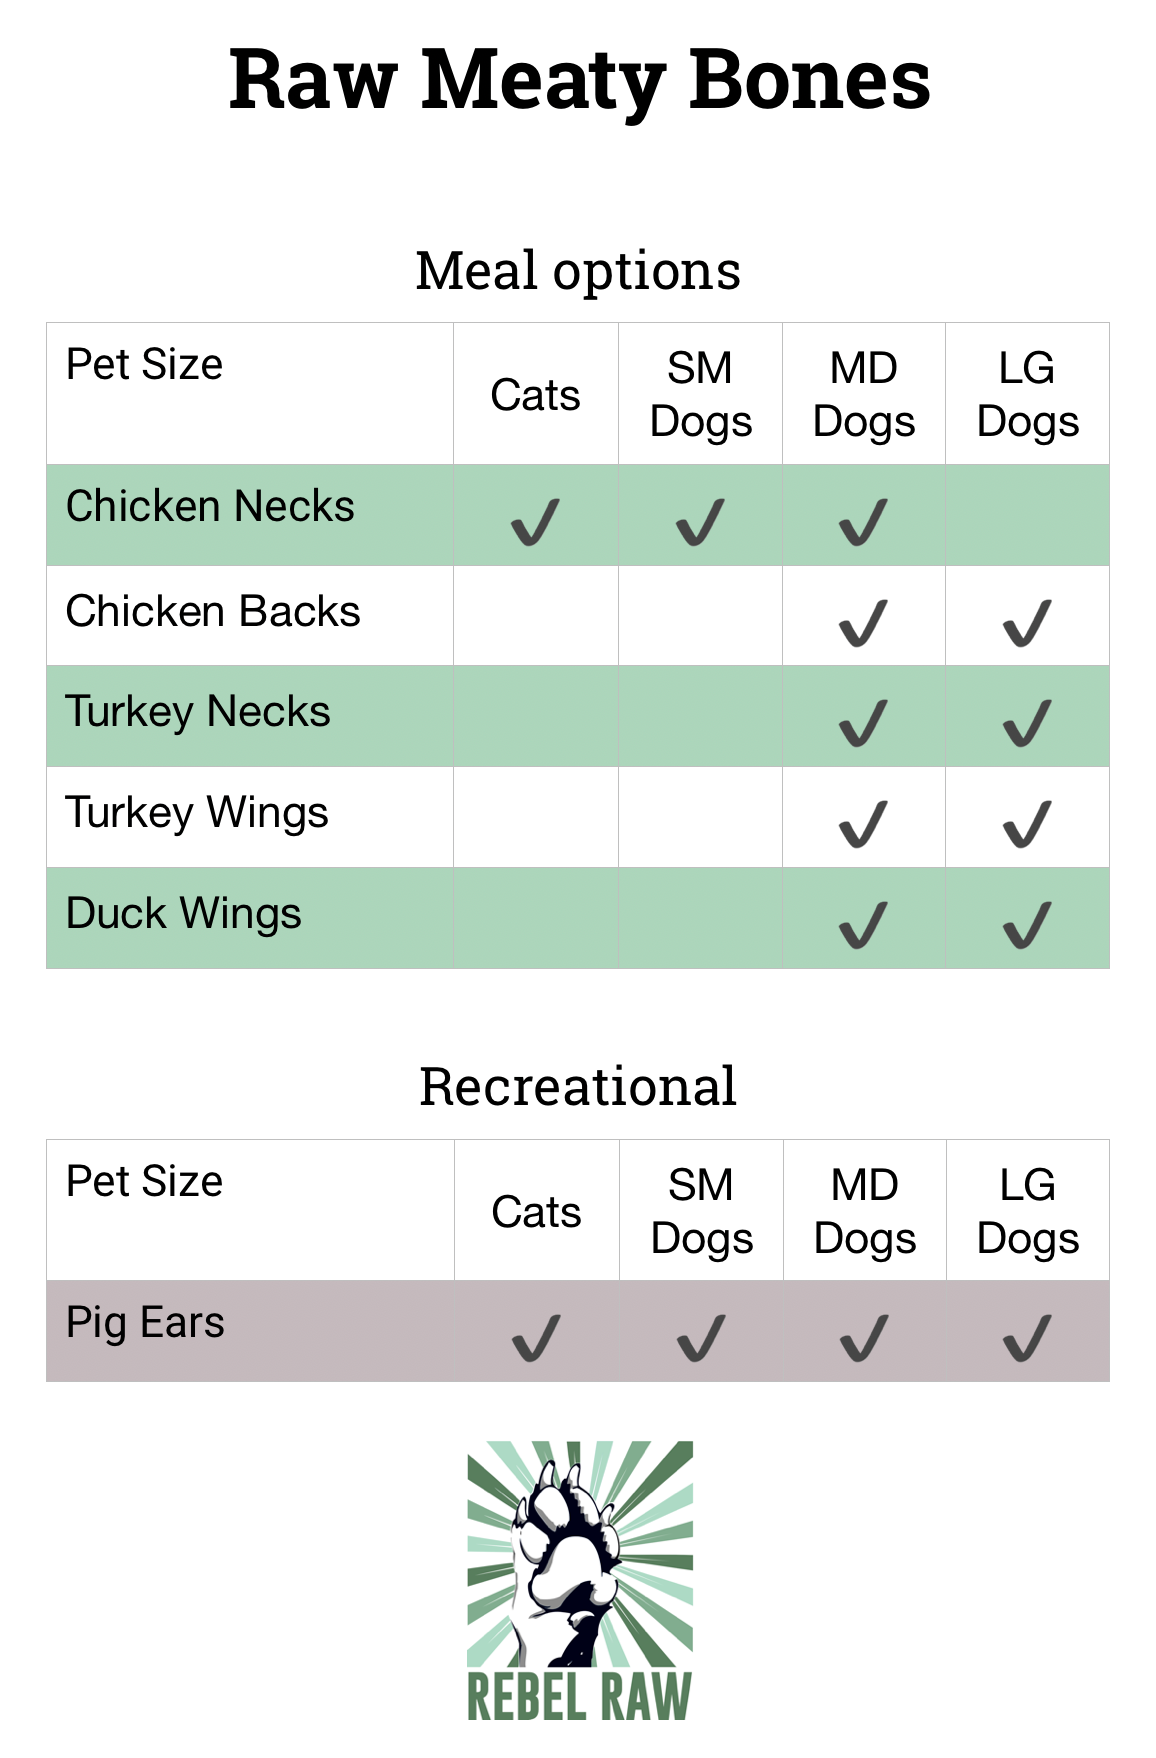 Which type of Raw Meaty Bone is right for your pet?